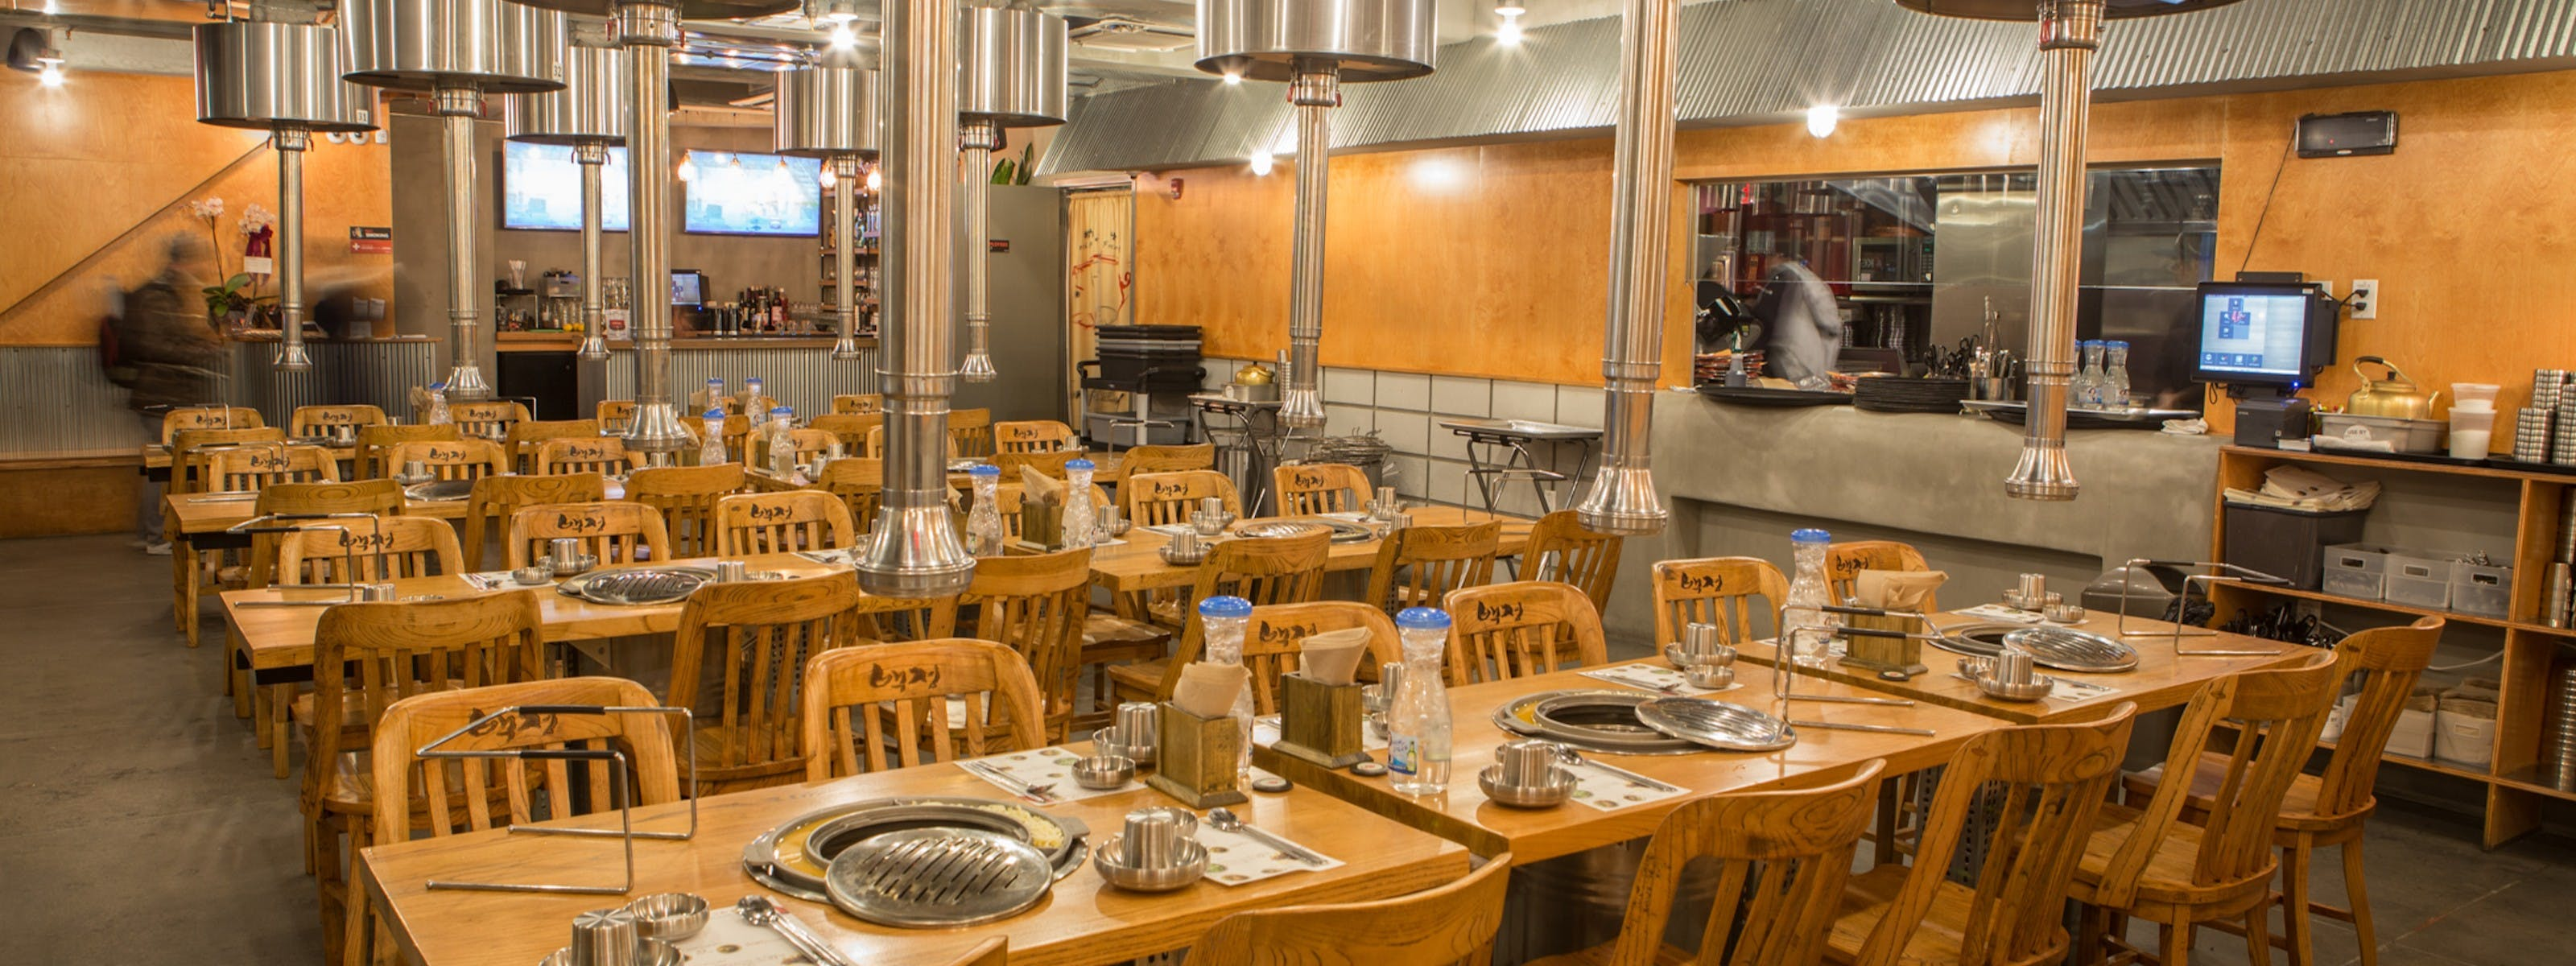 Where To Have Your Birthday Dinner New York The Infatuation